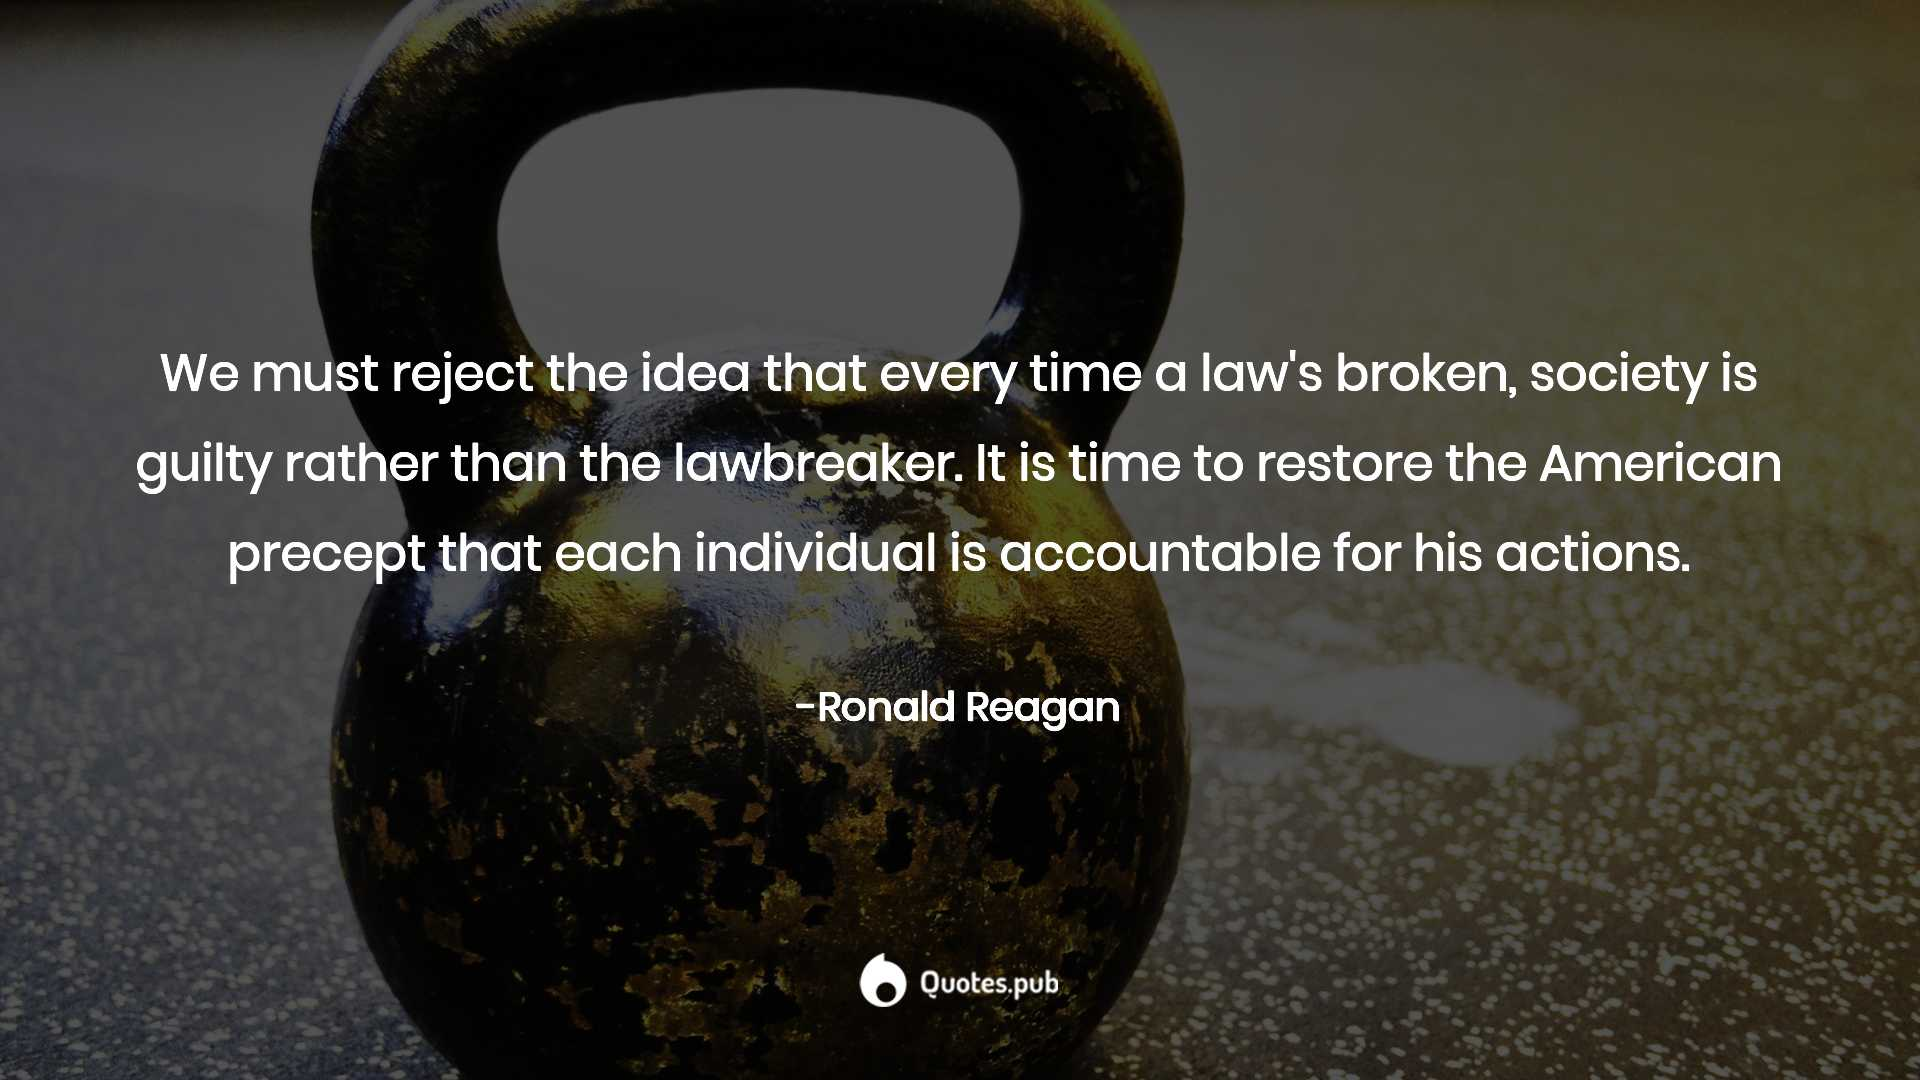 Ronald Reagan Reject Idea Society Is Guilty Rather Than Lawbreaker Poster